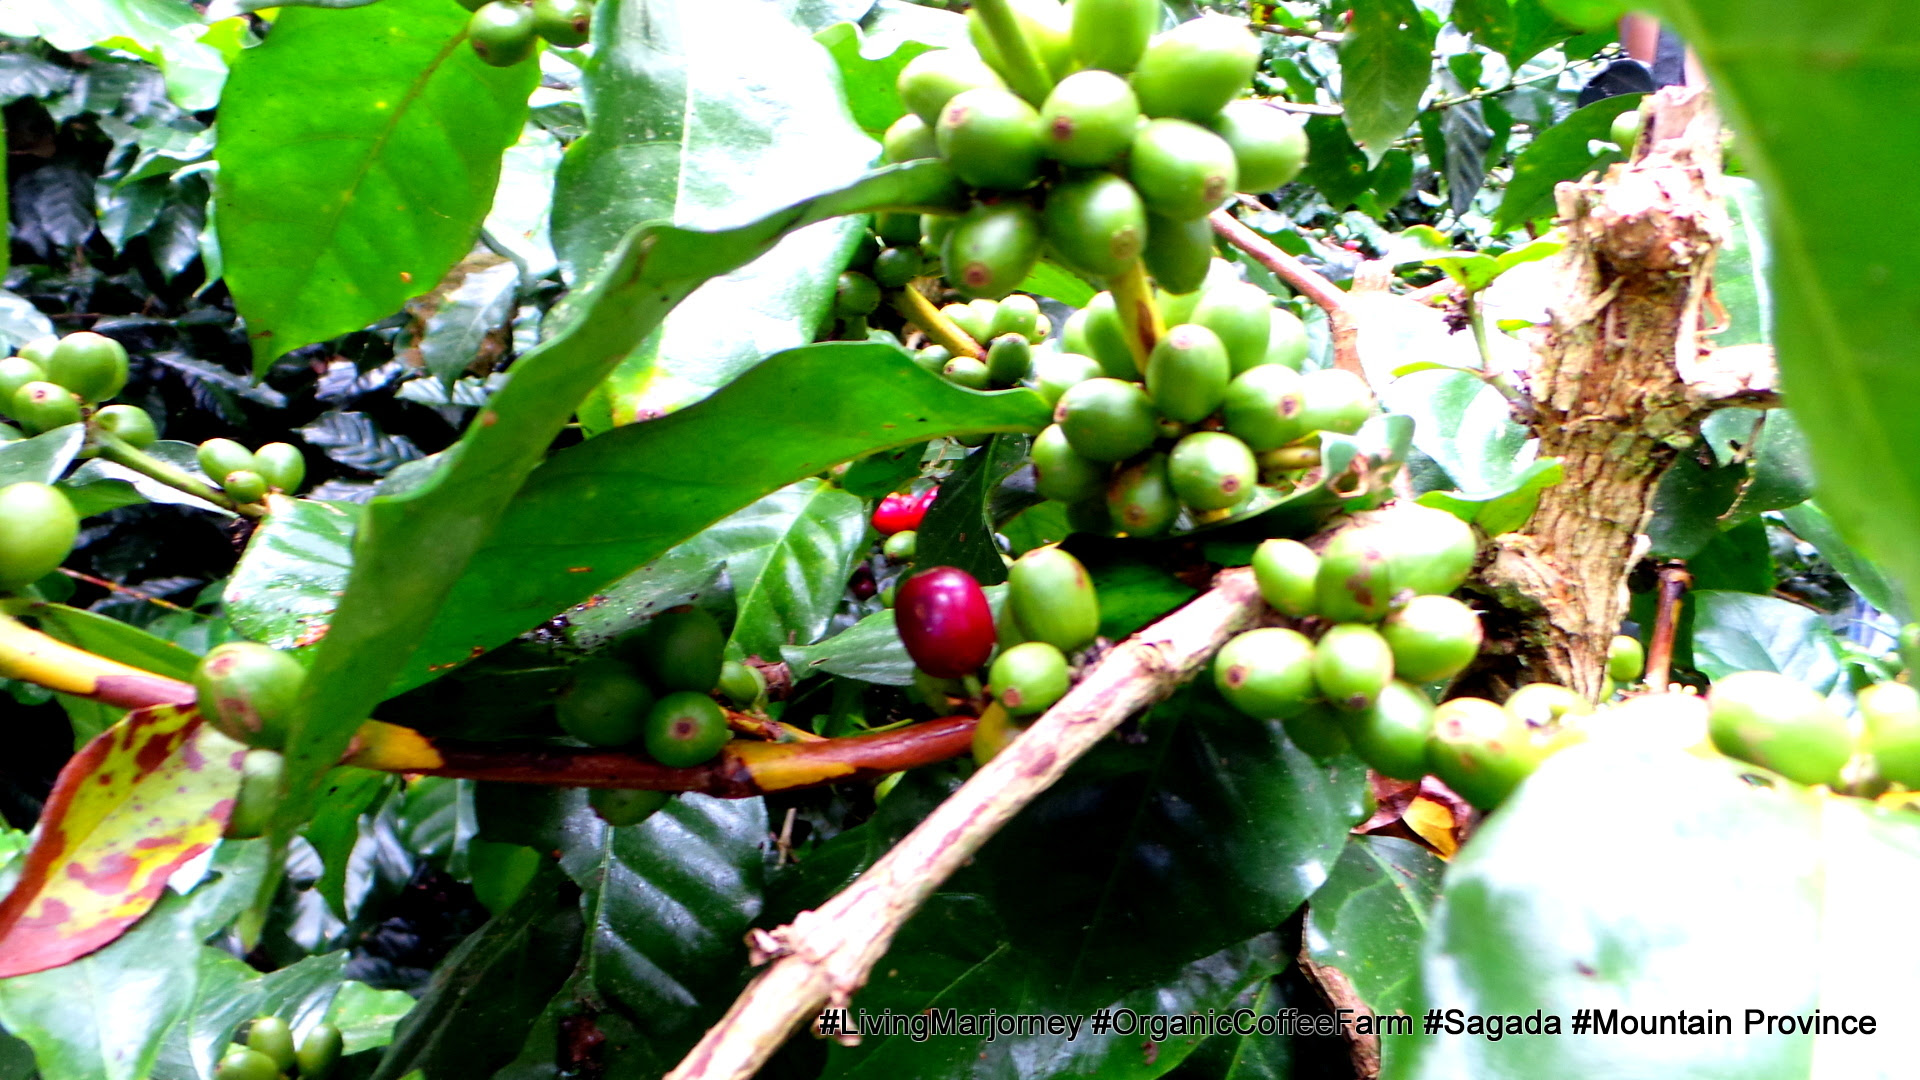 Sagada Organic Coffee Farm